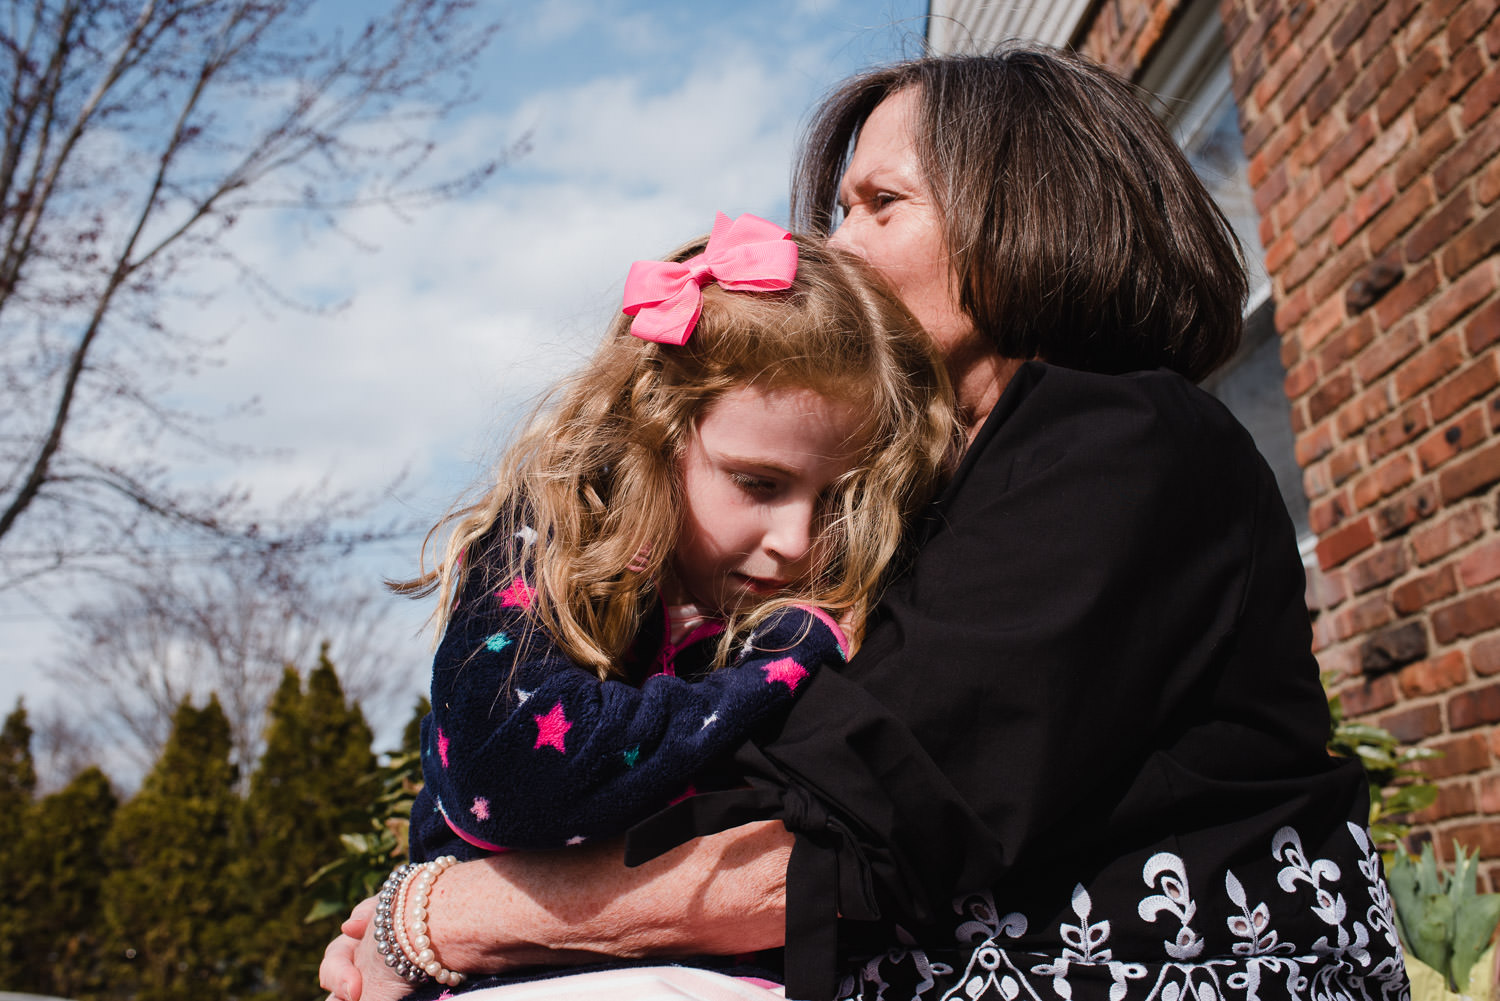 A little girl is embraced by her grandmother.